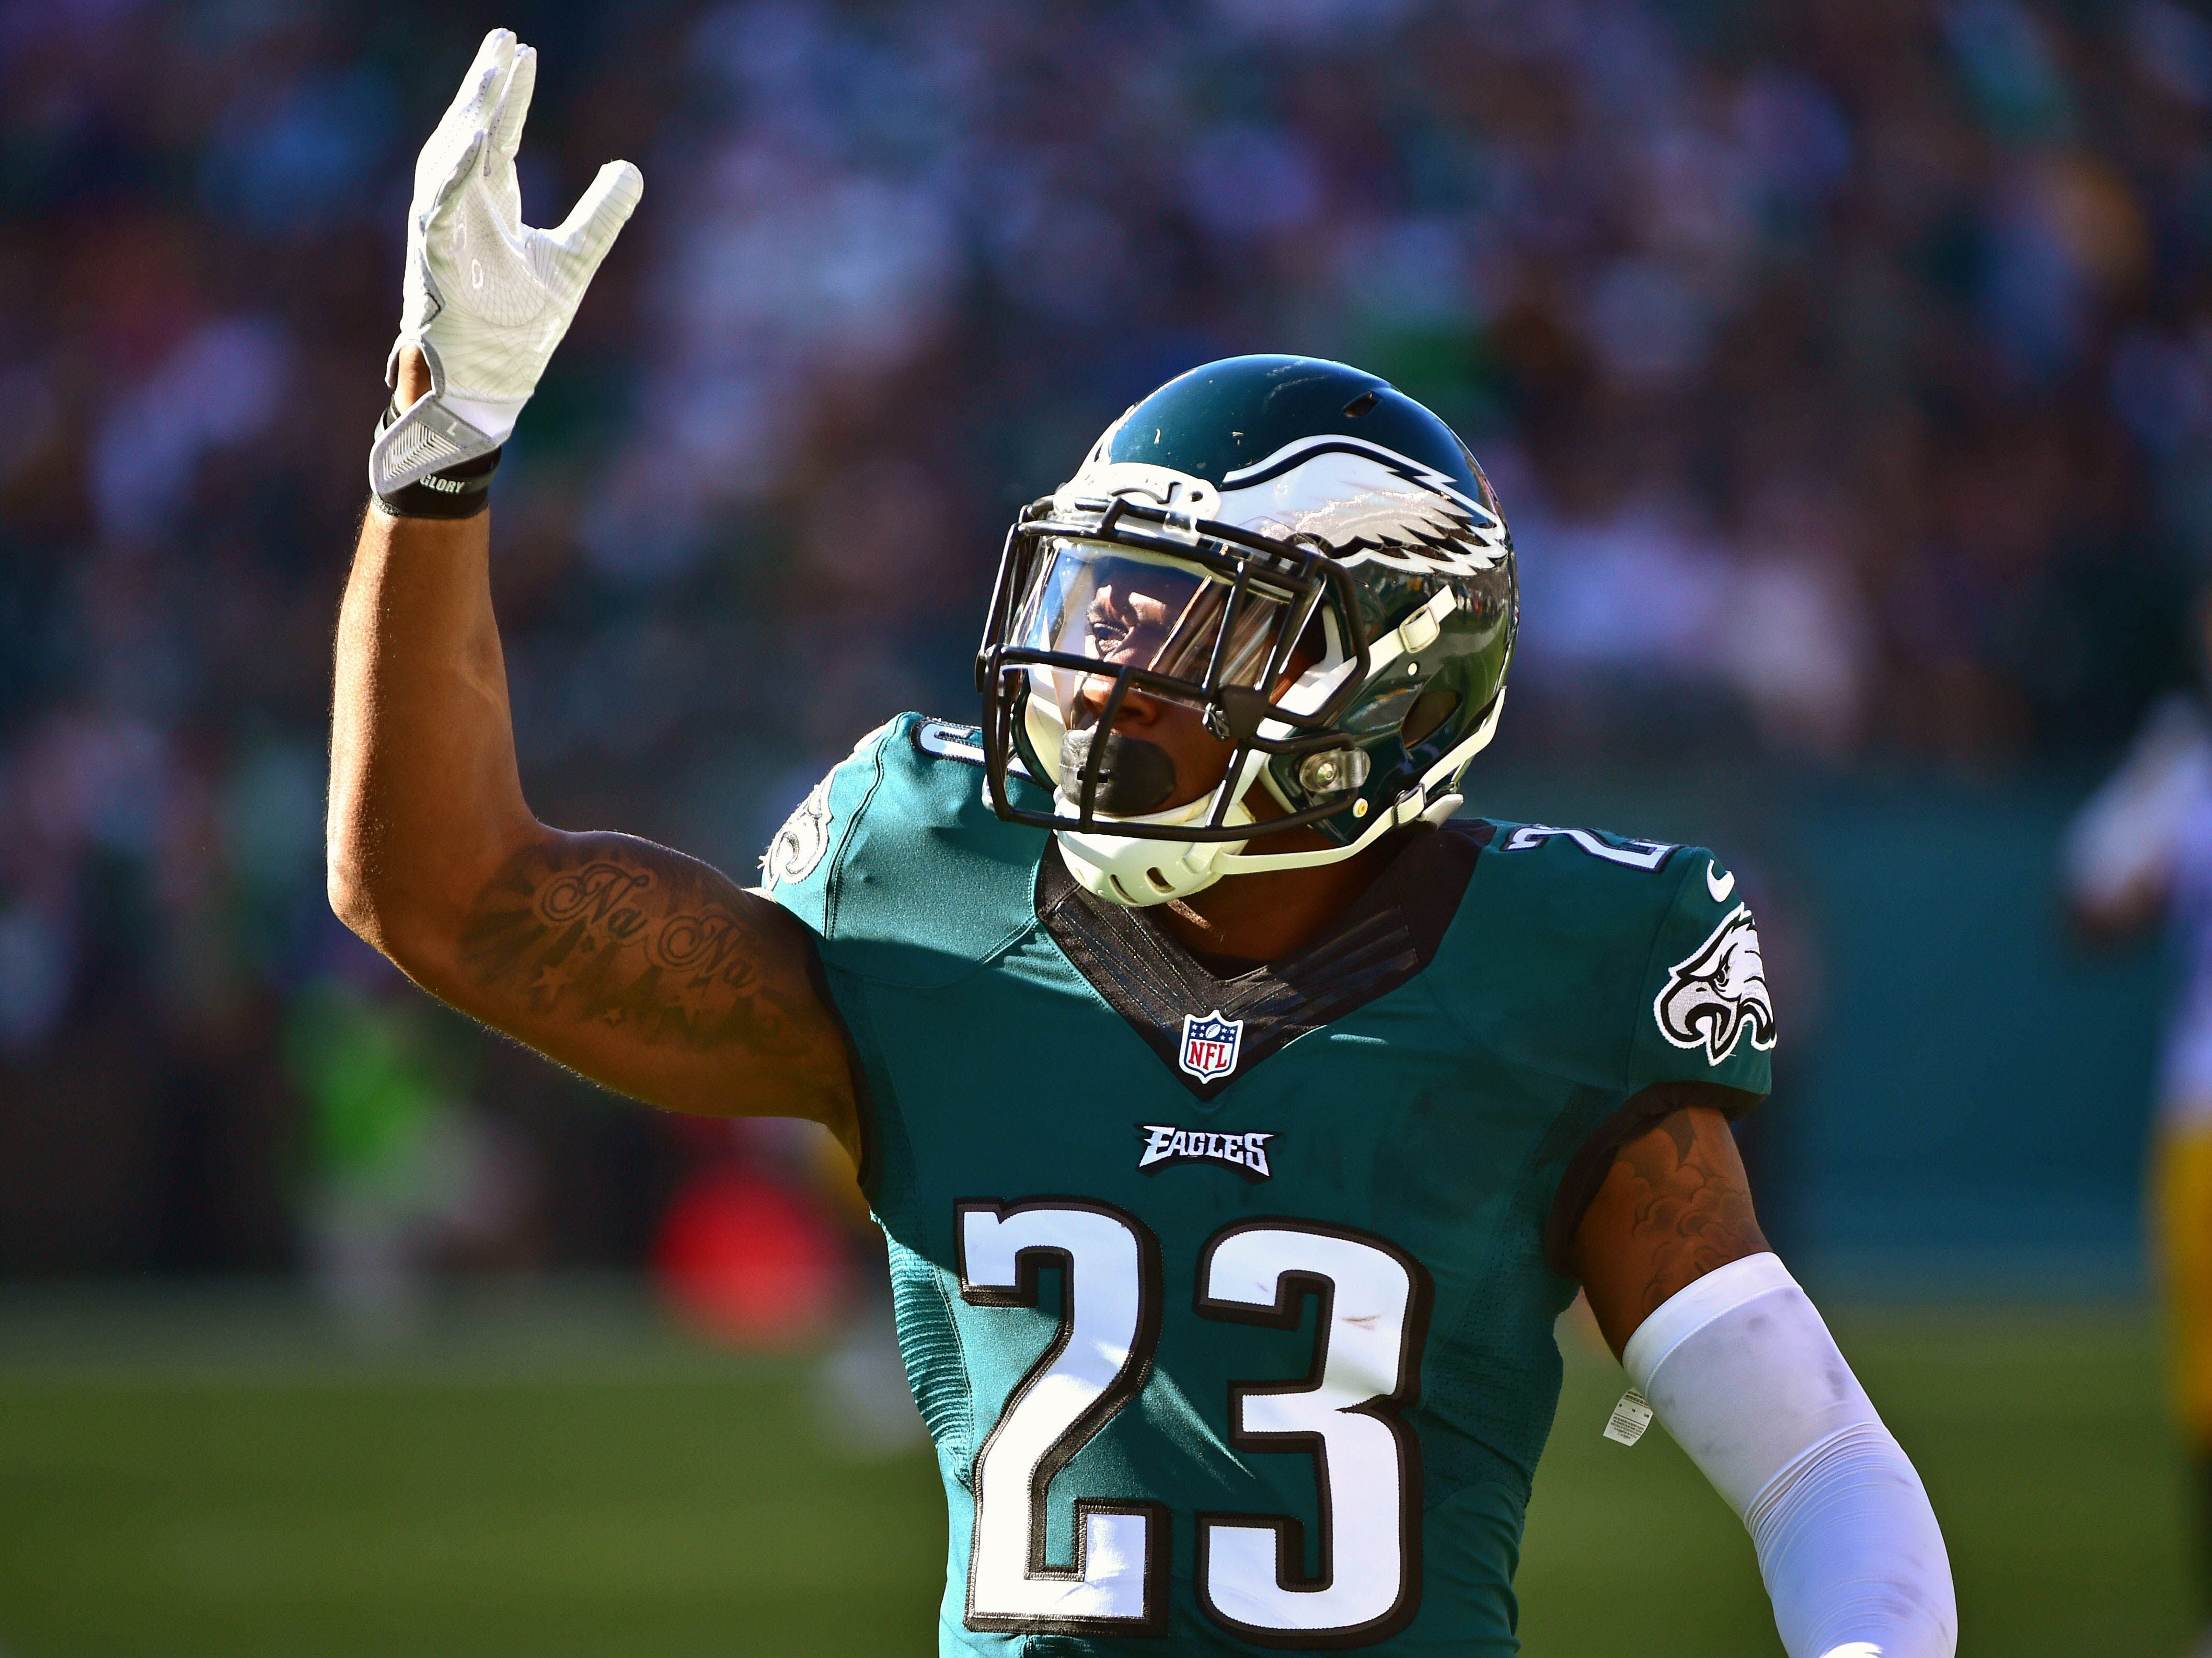 Rodney McLeod is the unsung hero of the Philadelphia Eagles defense